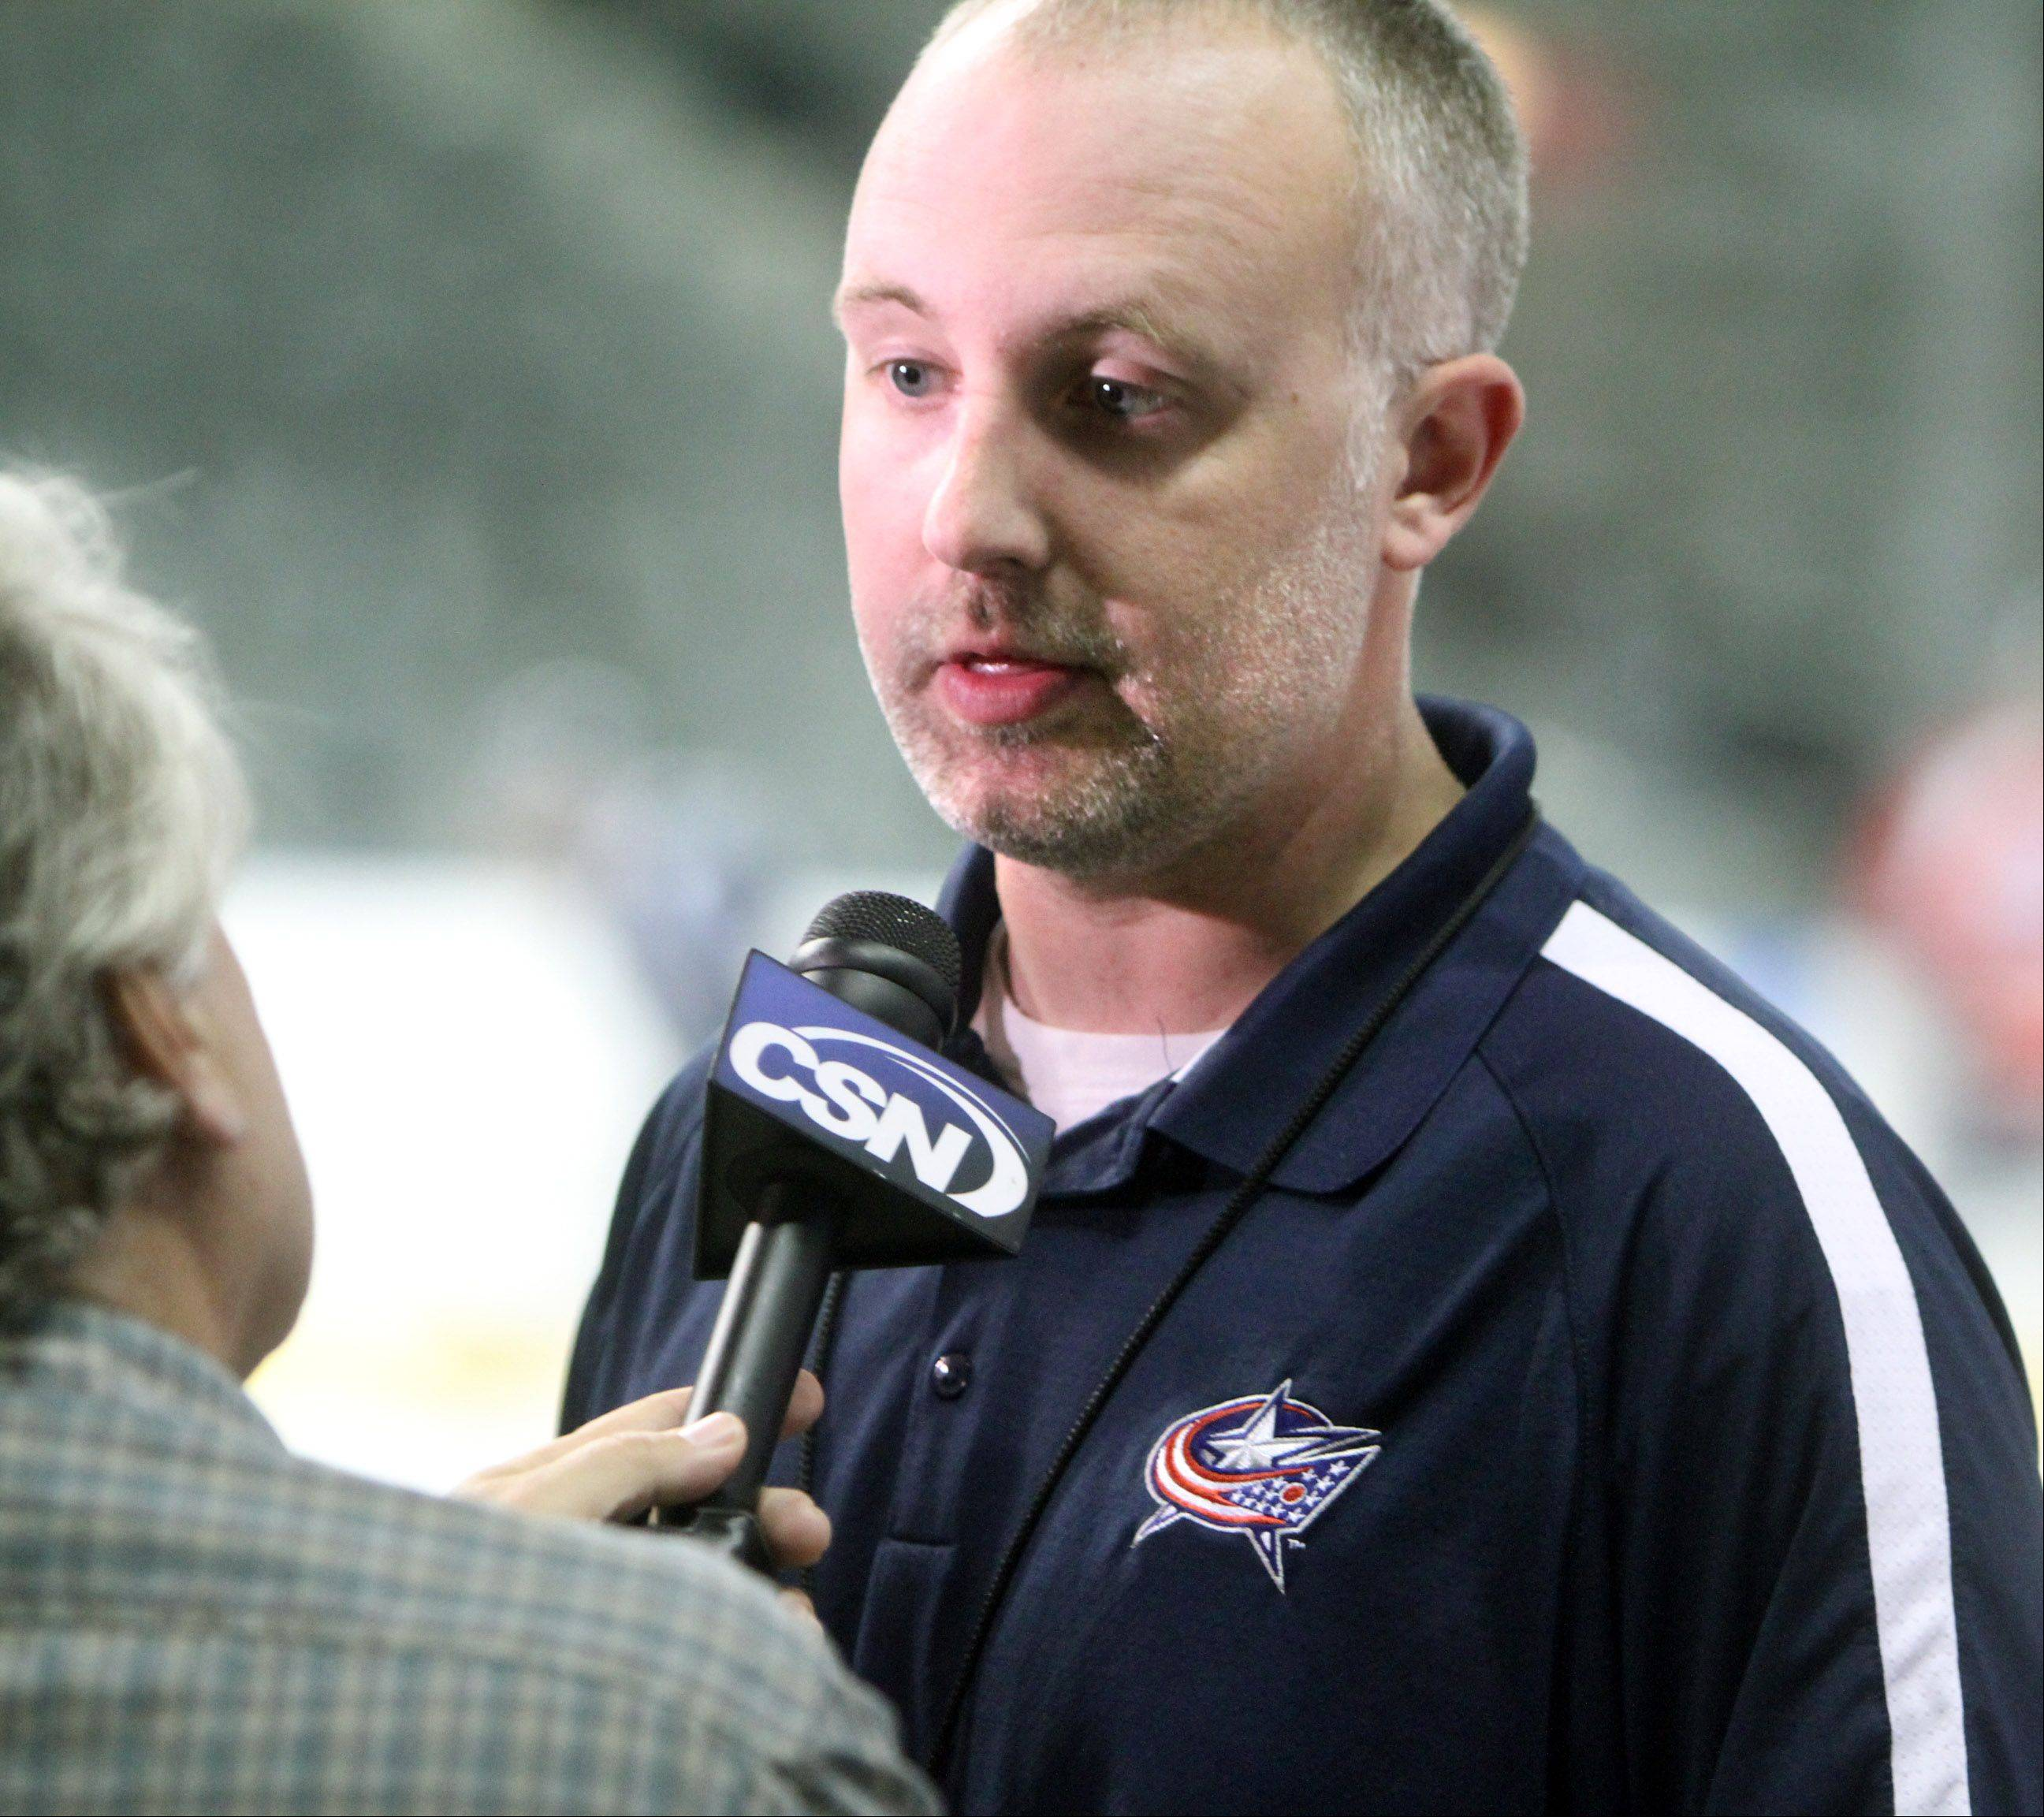 Chicago Express General Manager Wade Welsh speaks to the press during team media day Tuesday at the Sears Centre in Hoffman Estates.